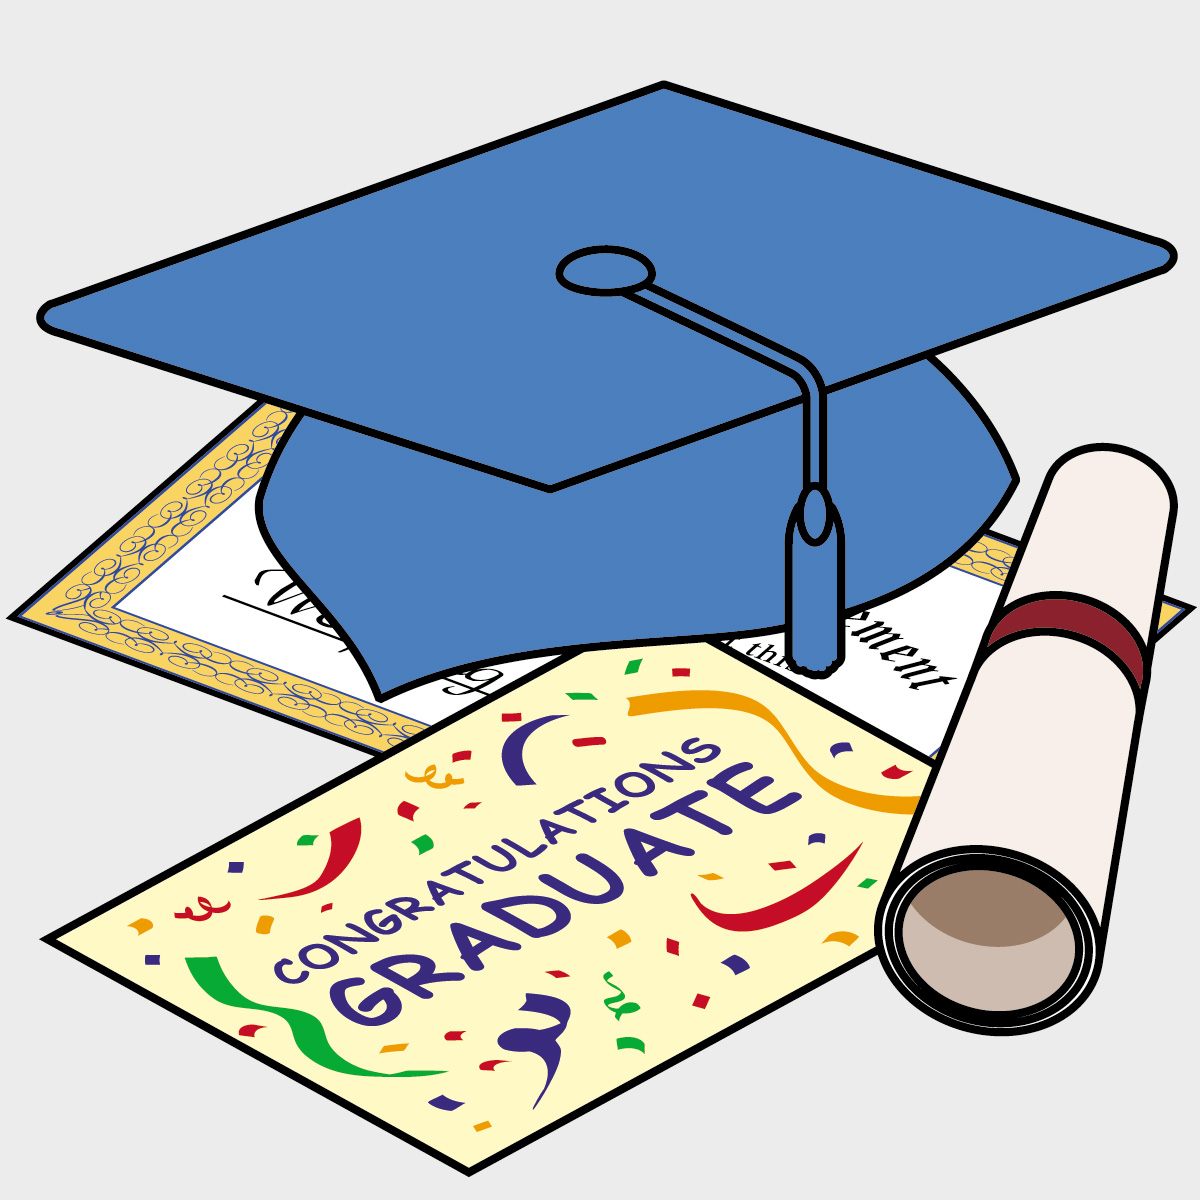 15 Kindergarten Graduation Clip Art Free-15 Kindergarten Graduation Clip Art Free Free Cliparts That You Can-1